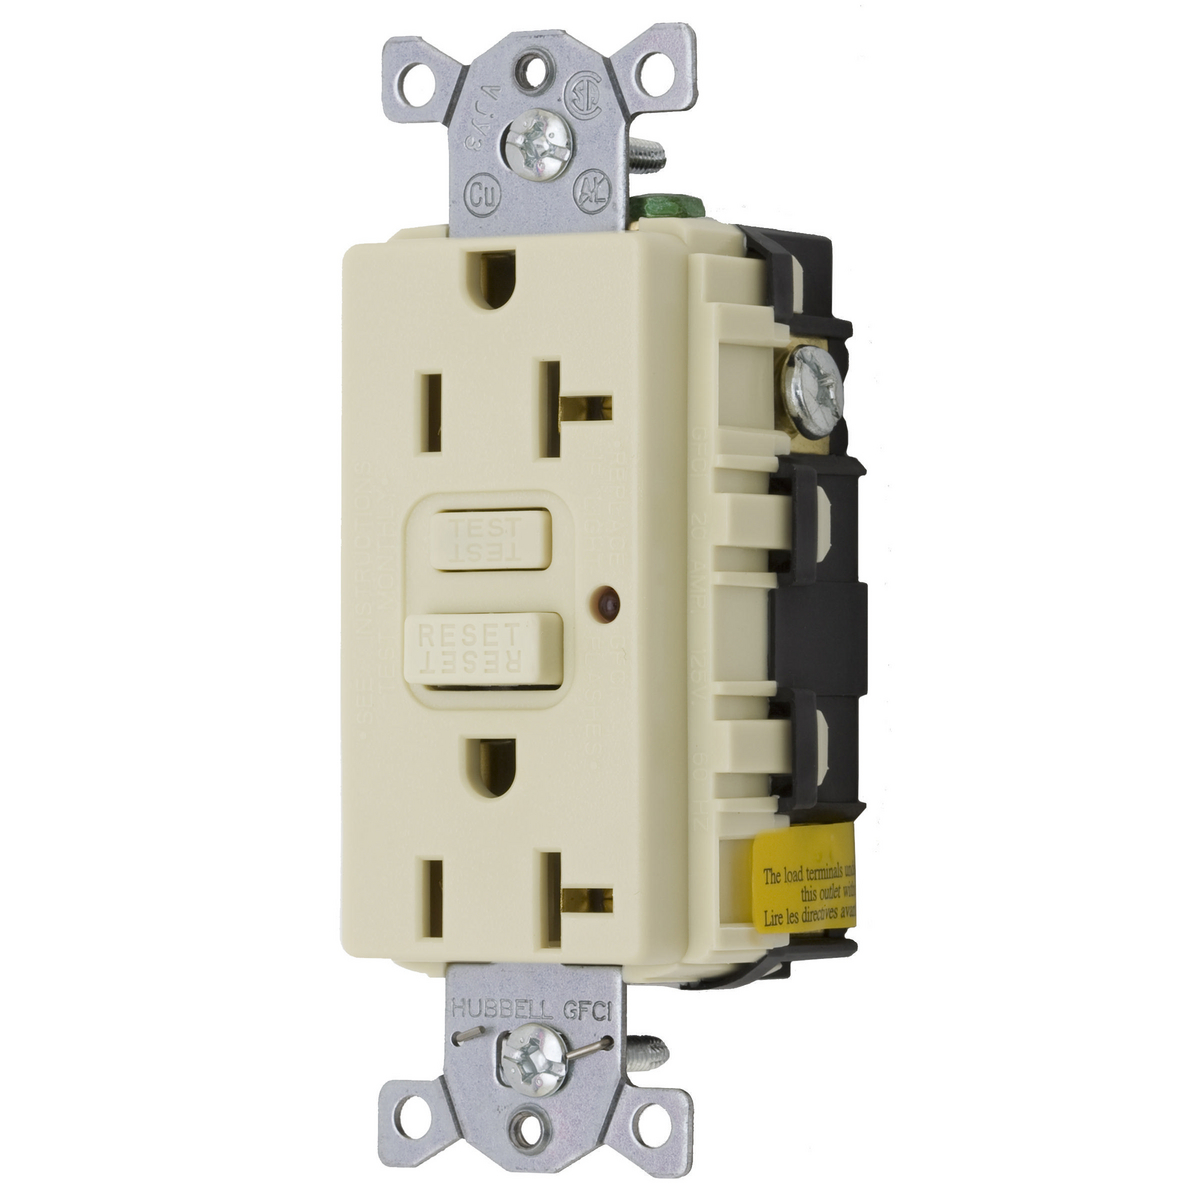 Hubbell GF20ILA 20 Amp 125 Volt 2-Pole 3-Wire NEMA 5-20R Ivory GFCI Receptacle with LED Indicator